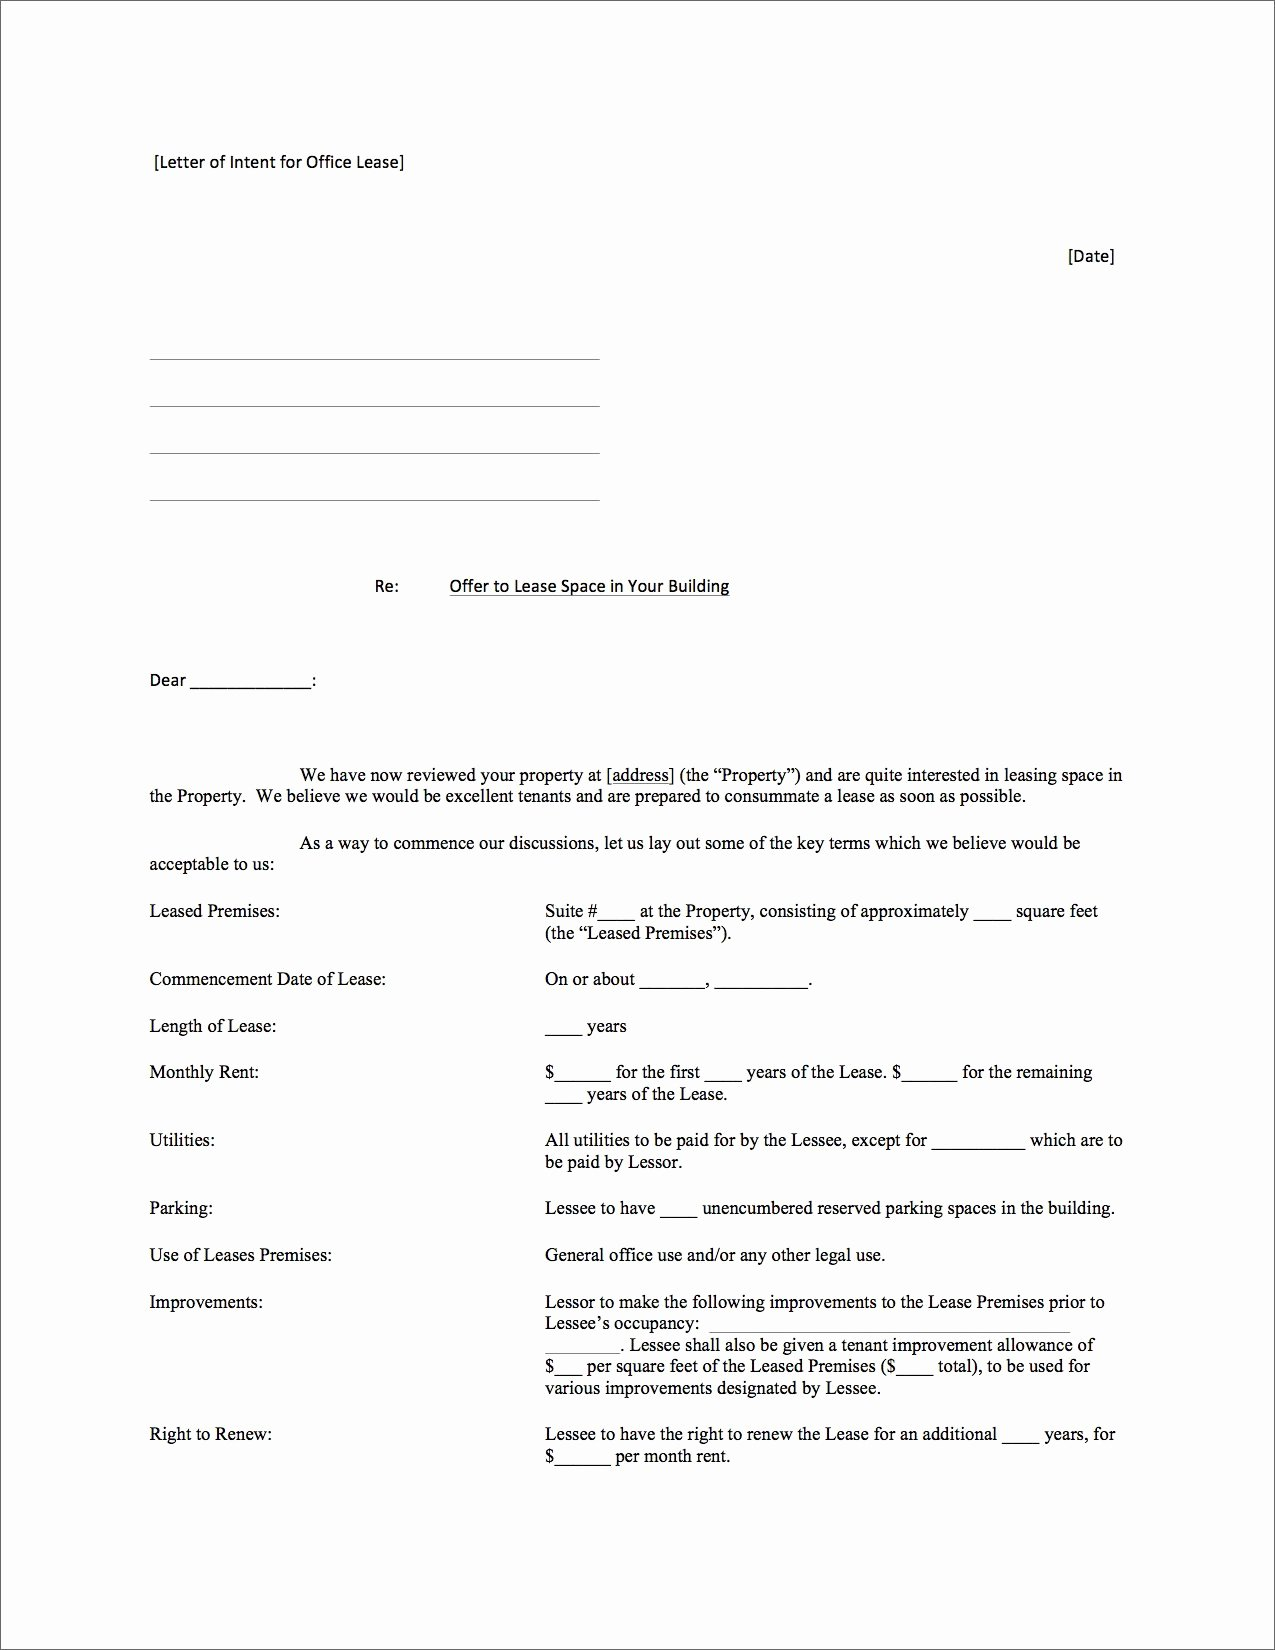 Letter Of Intent to Lease Template Elegant How to Negotiate the Best Fice Lease for Your Startup